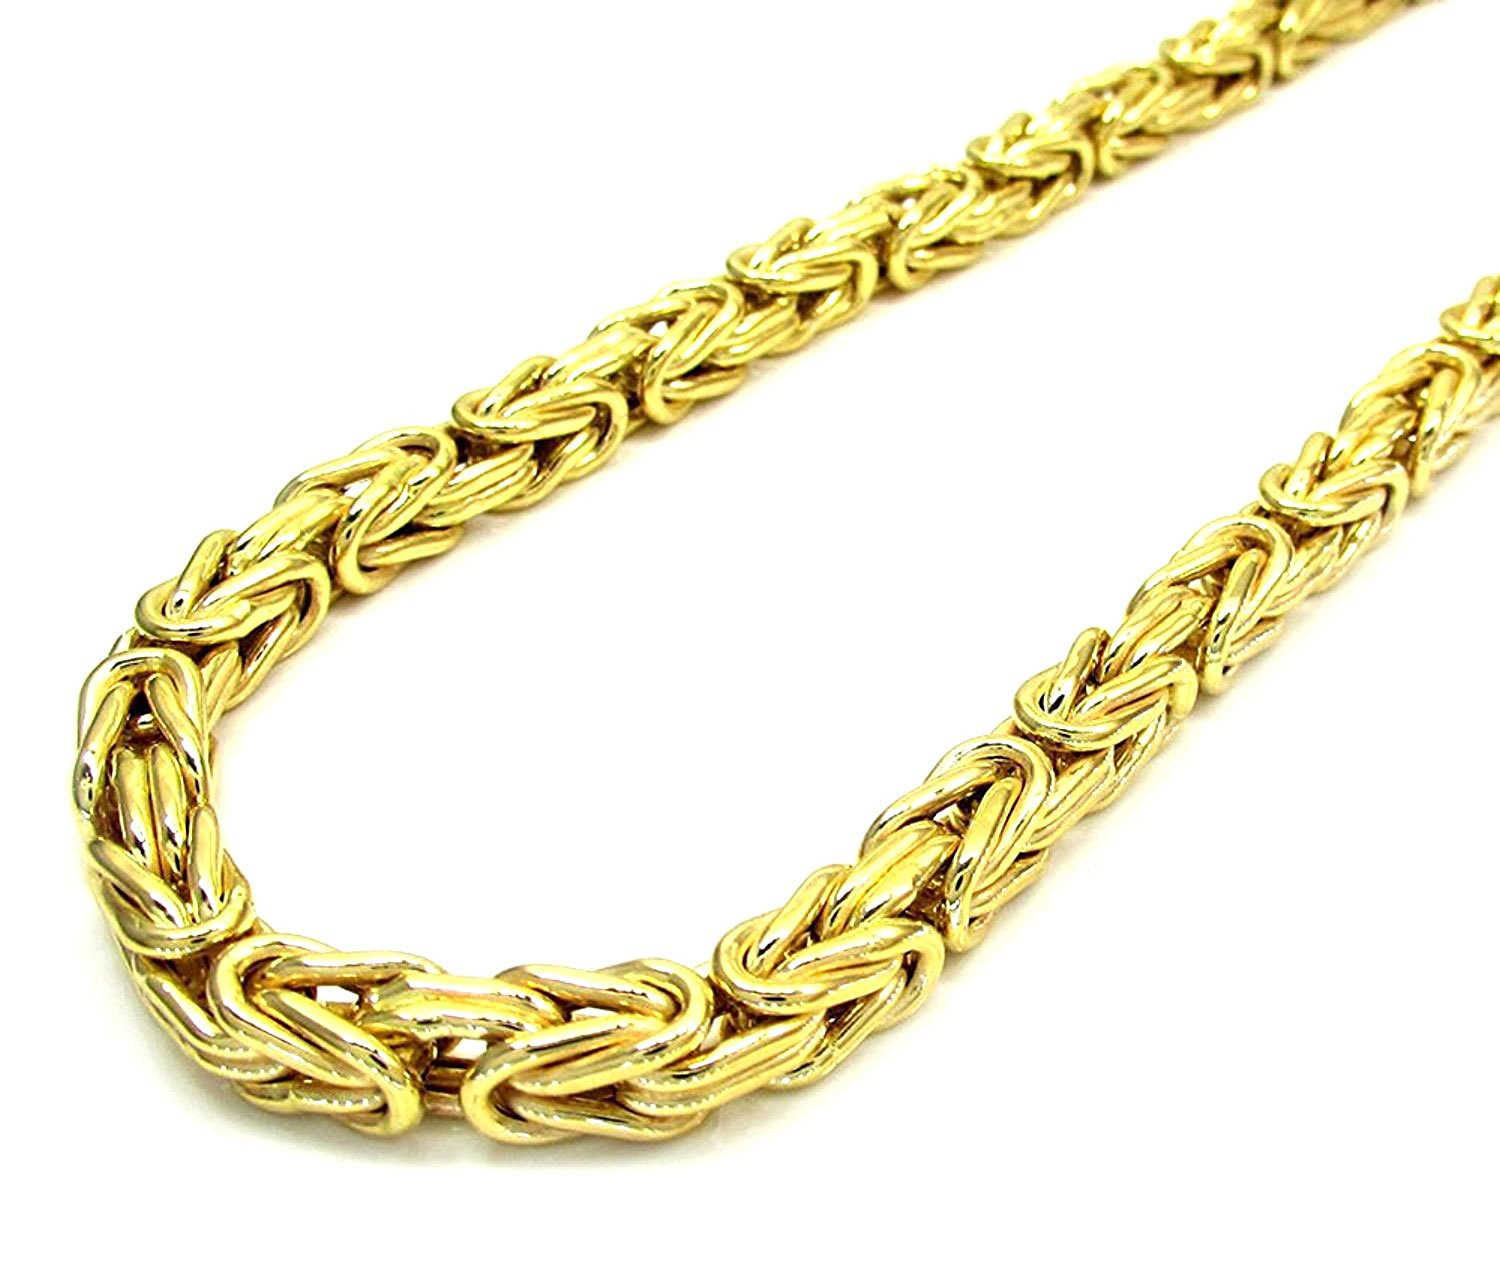 d3039ed02104a Cheap 10k Gold Lobster Clasp And Ring 12mm, find 10k Gold Lobster ...